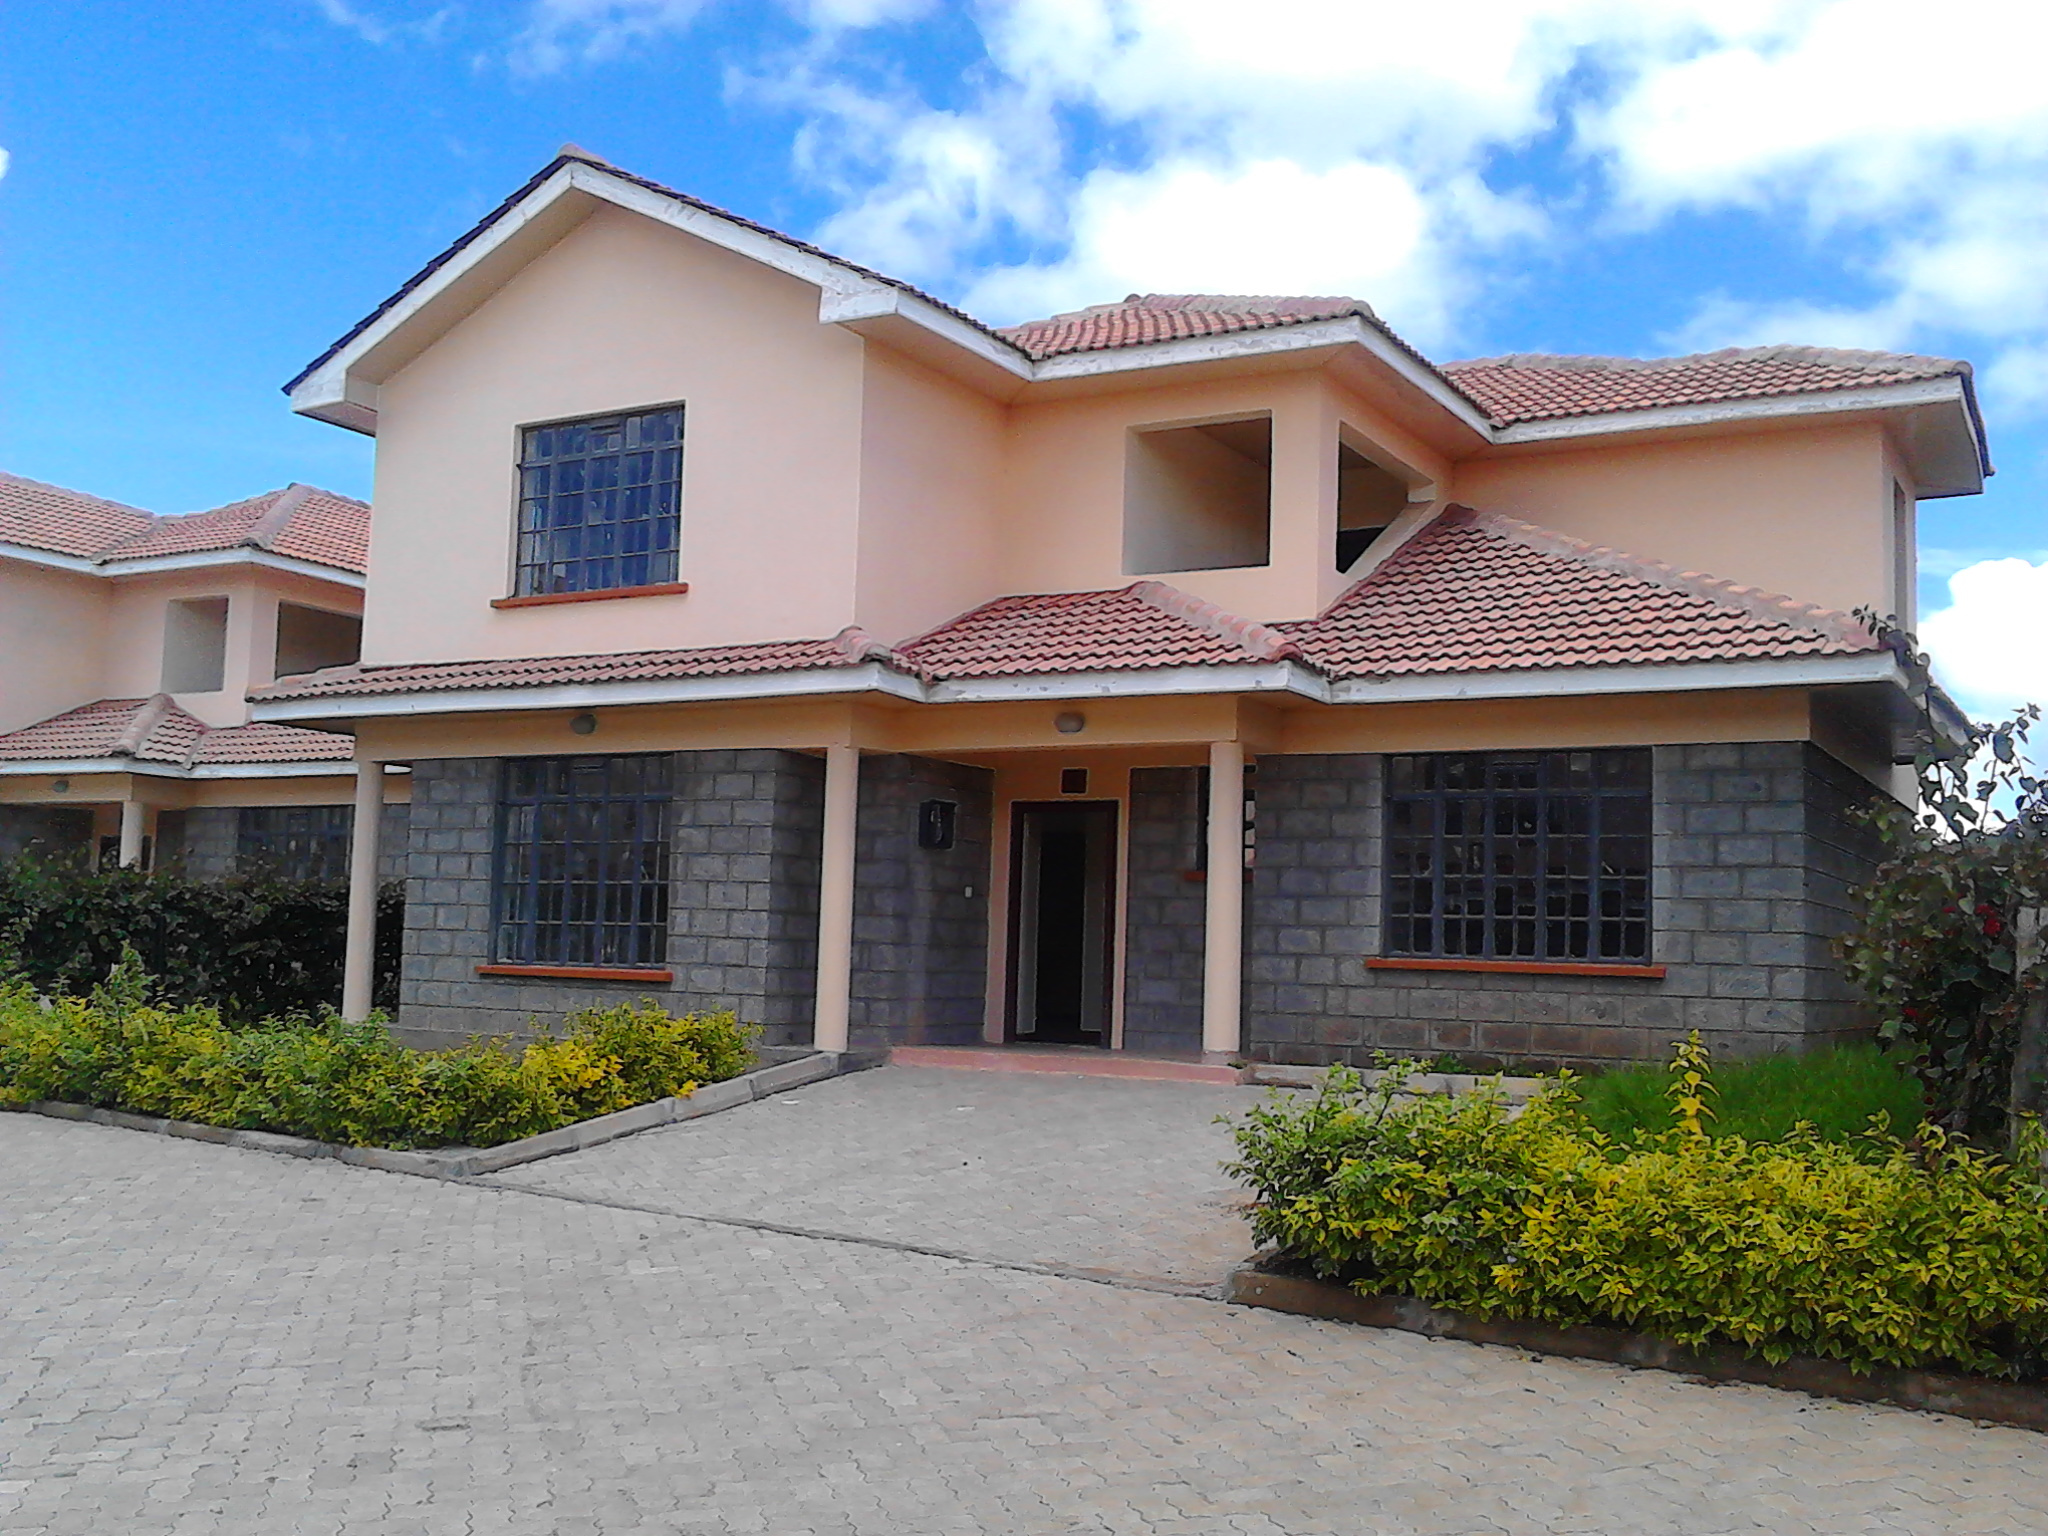 Easy clean way to acquire a home in kenya newsday kenya for House designs in kenya photos